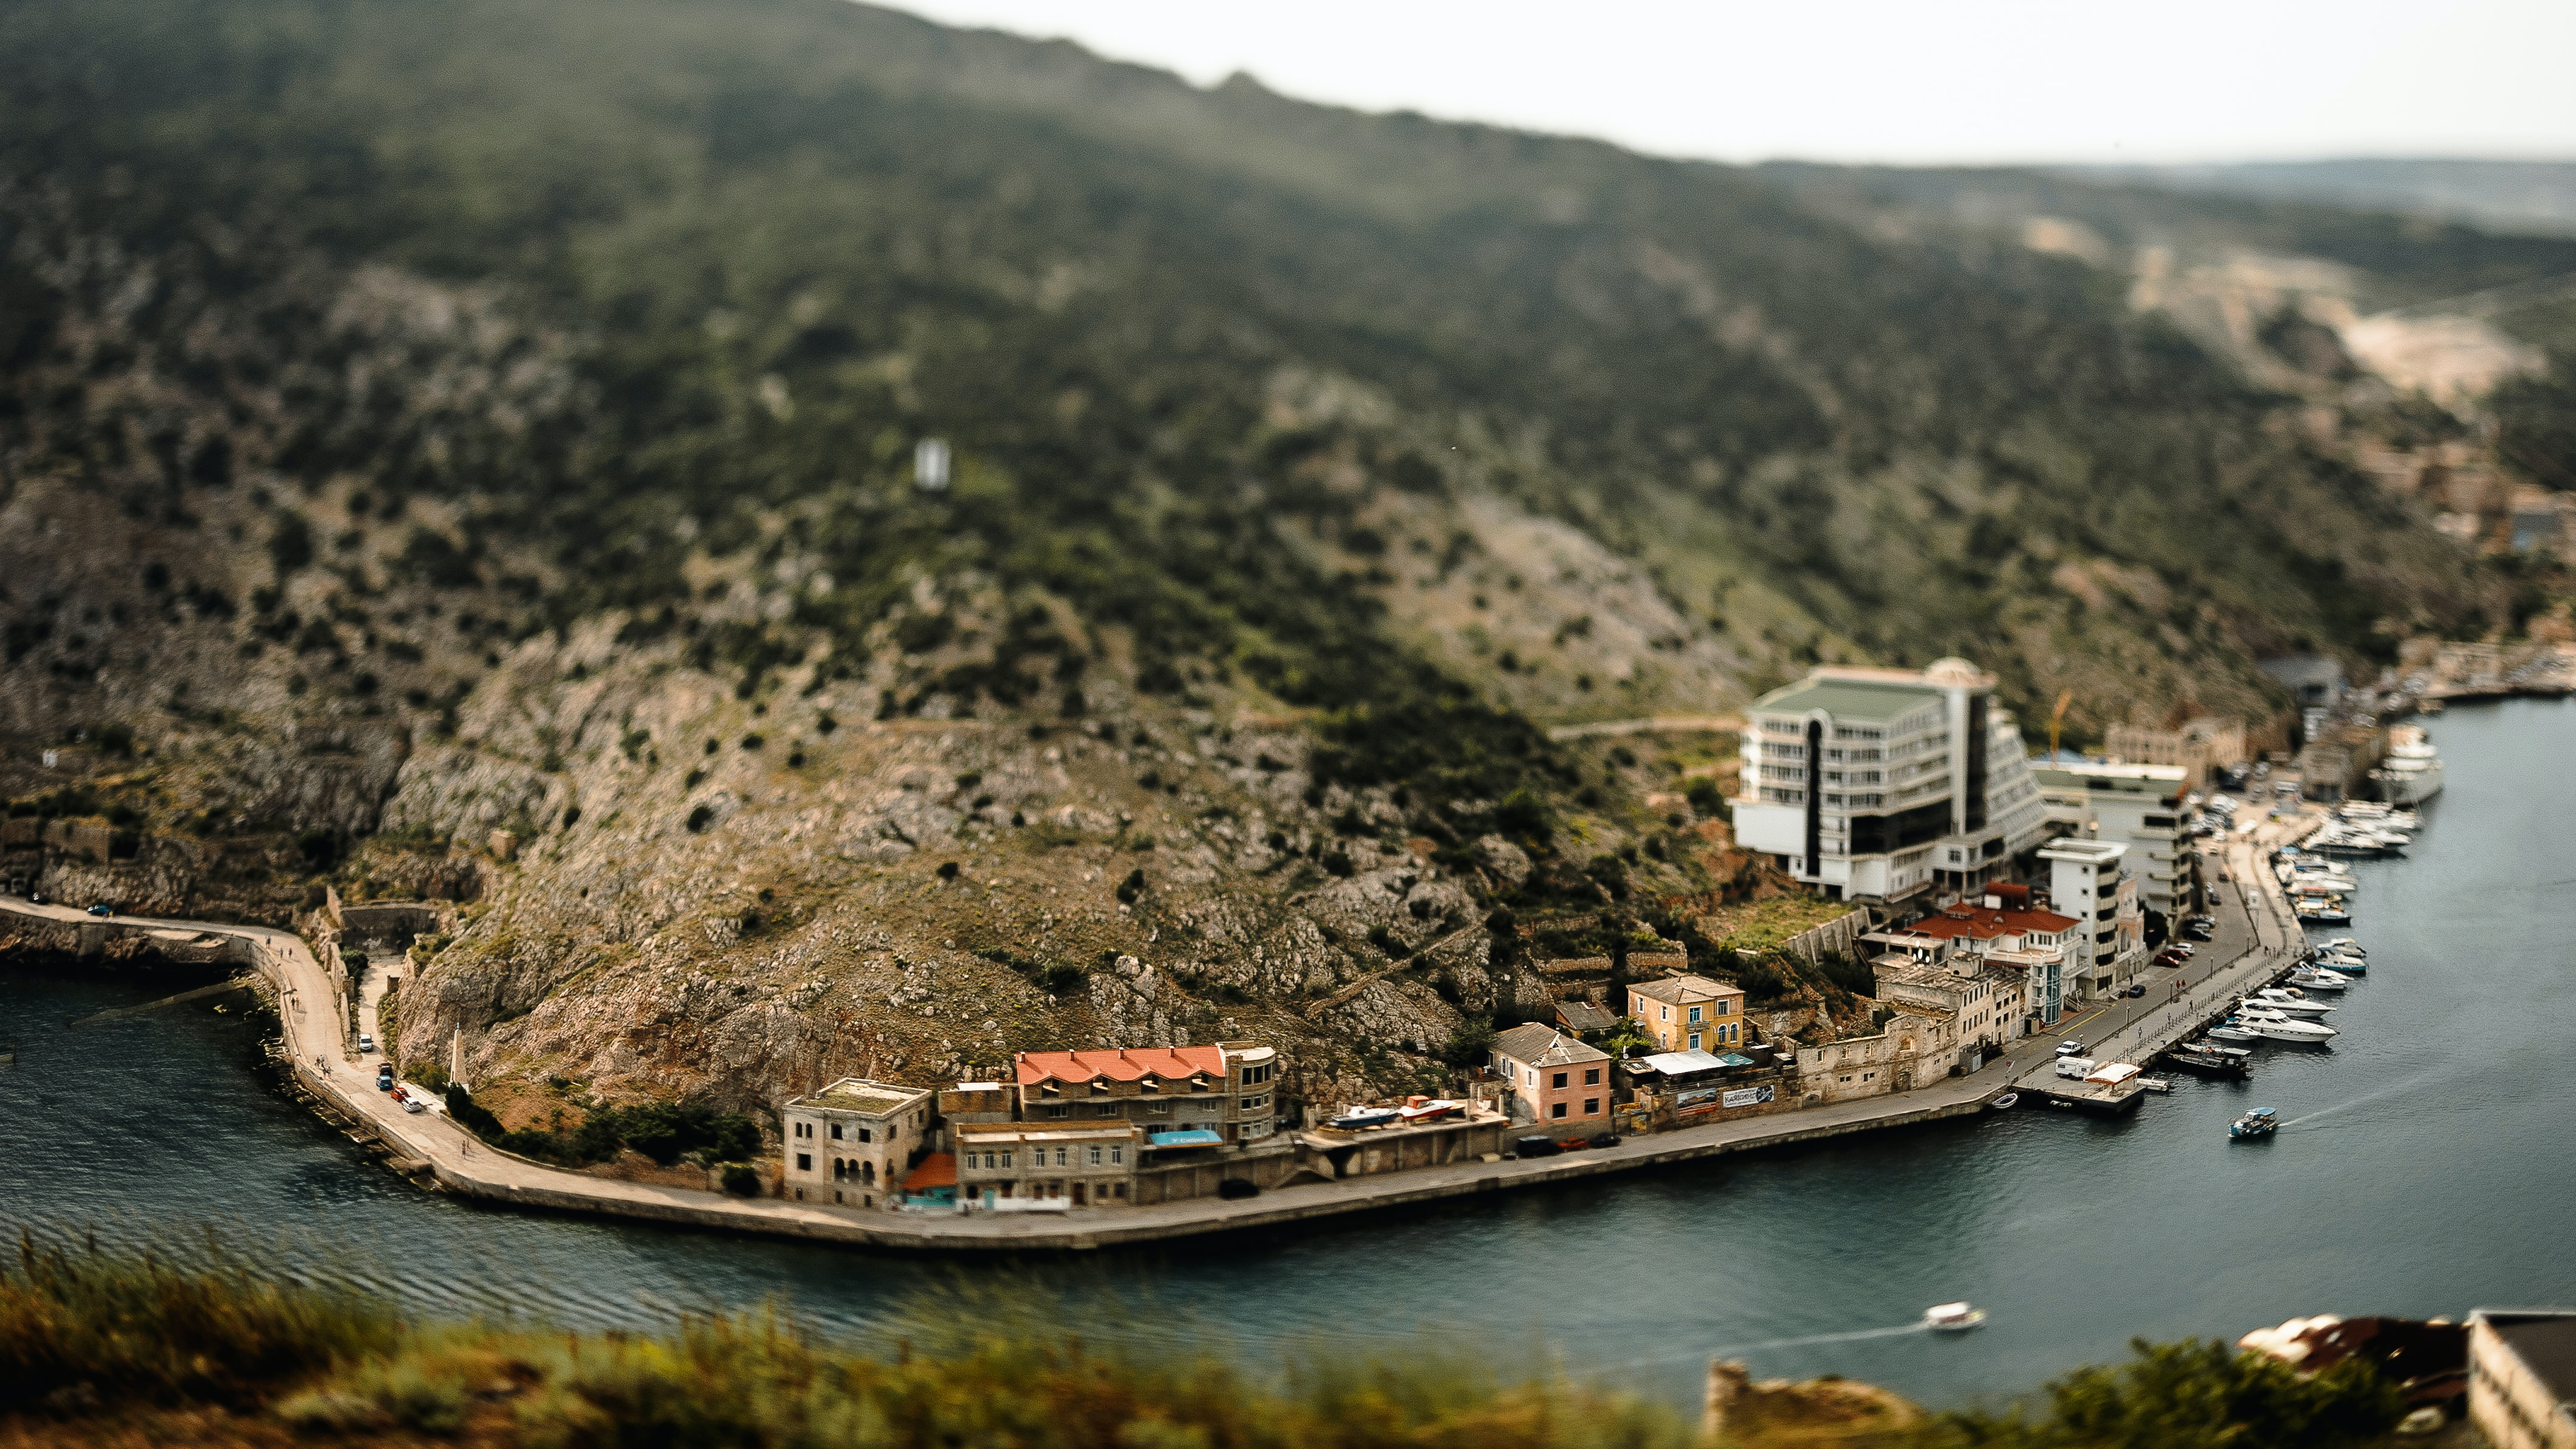 panoramic photo of village near body of water